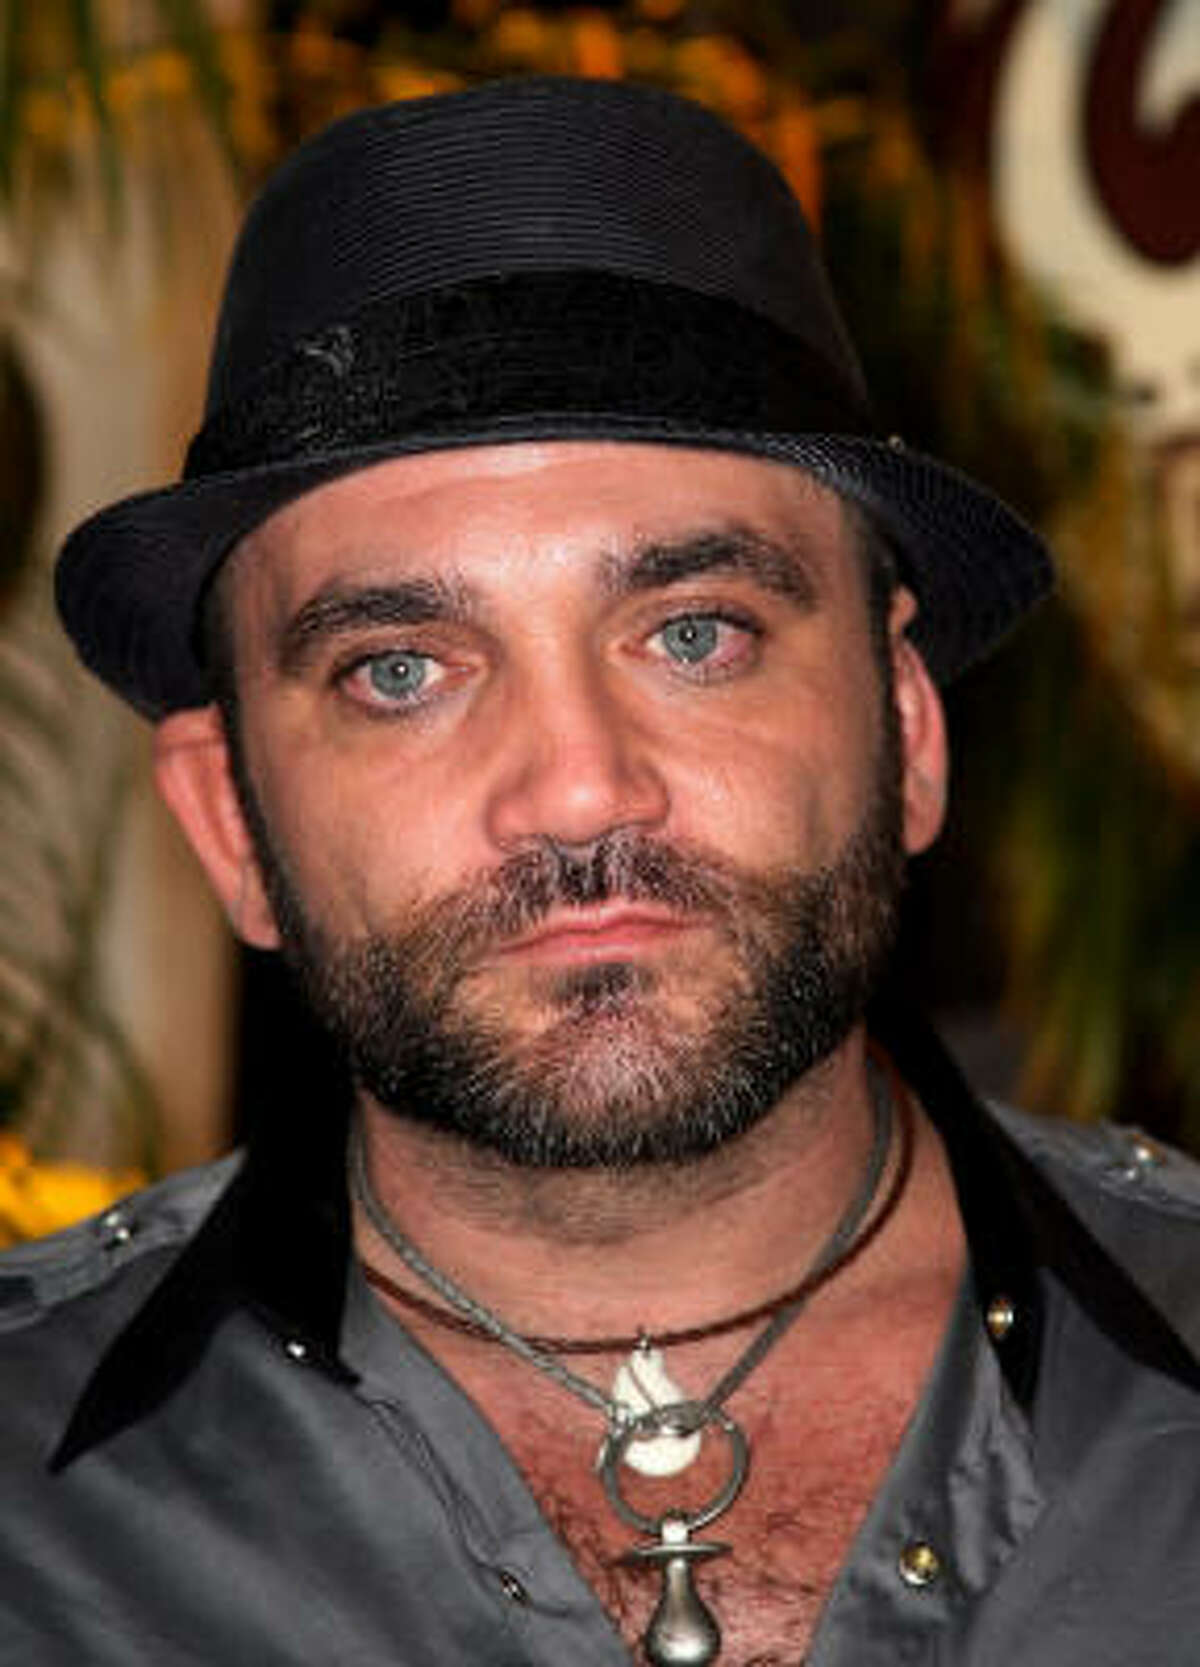 Russell Hantz says he was not surprised by the outcome of Survivor.